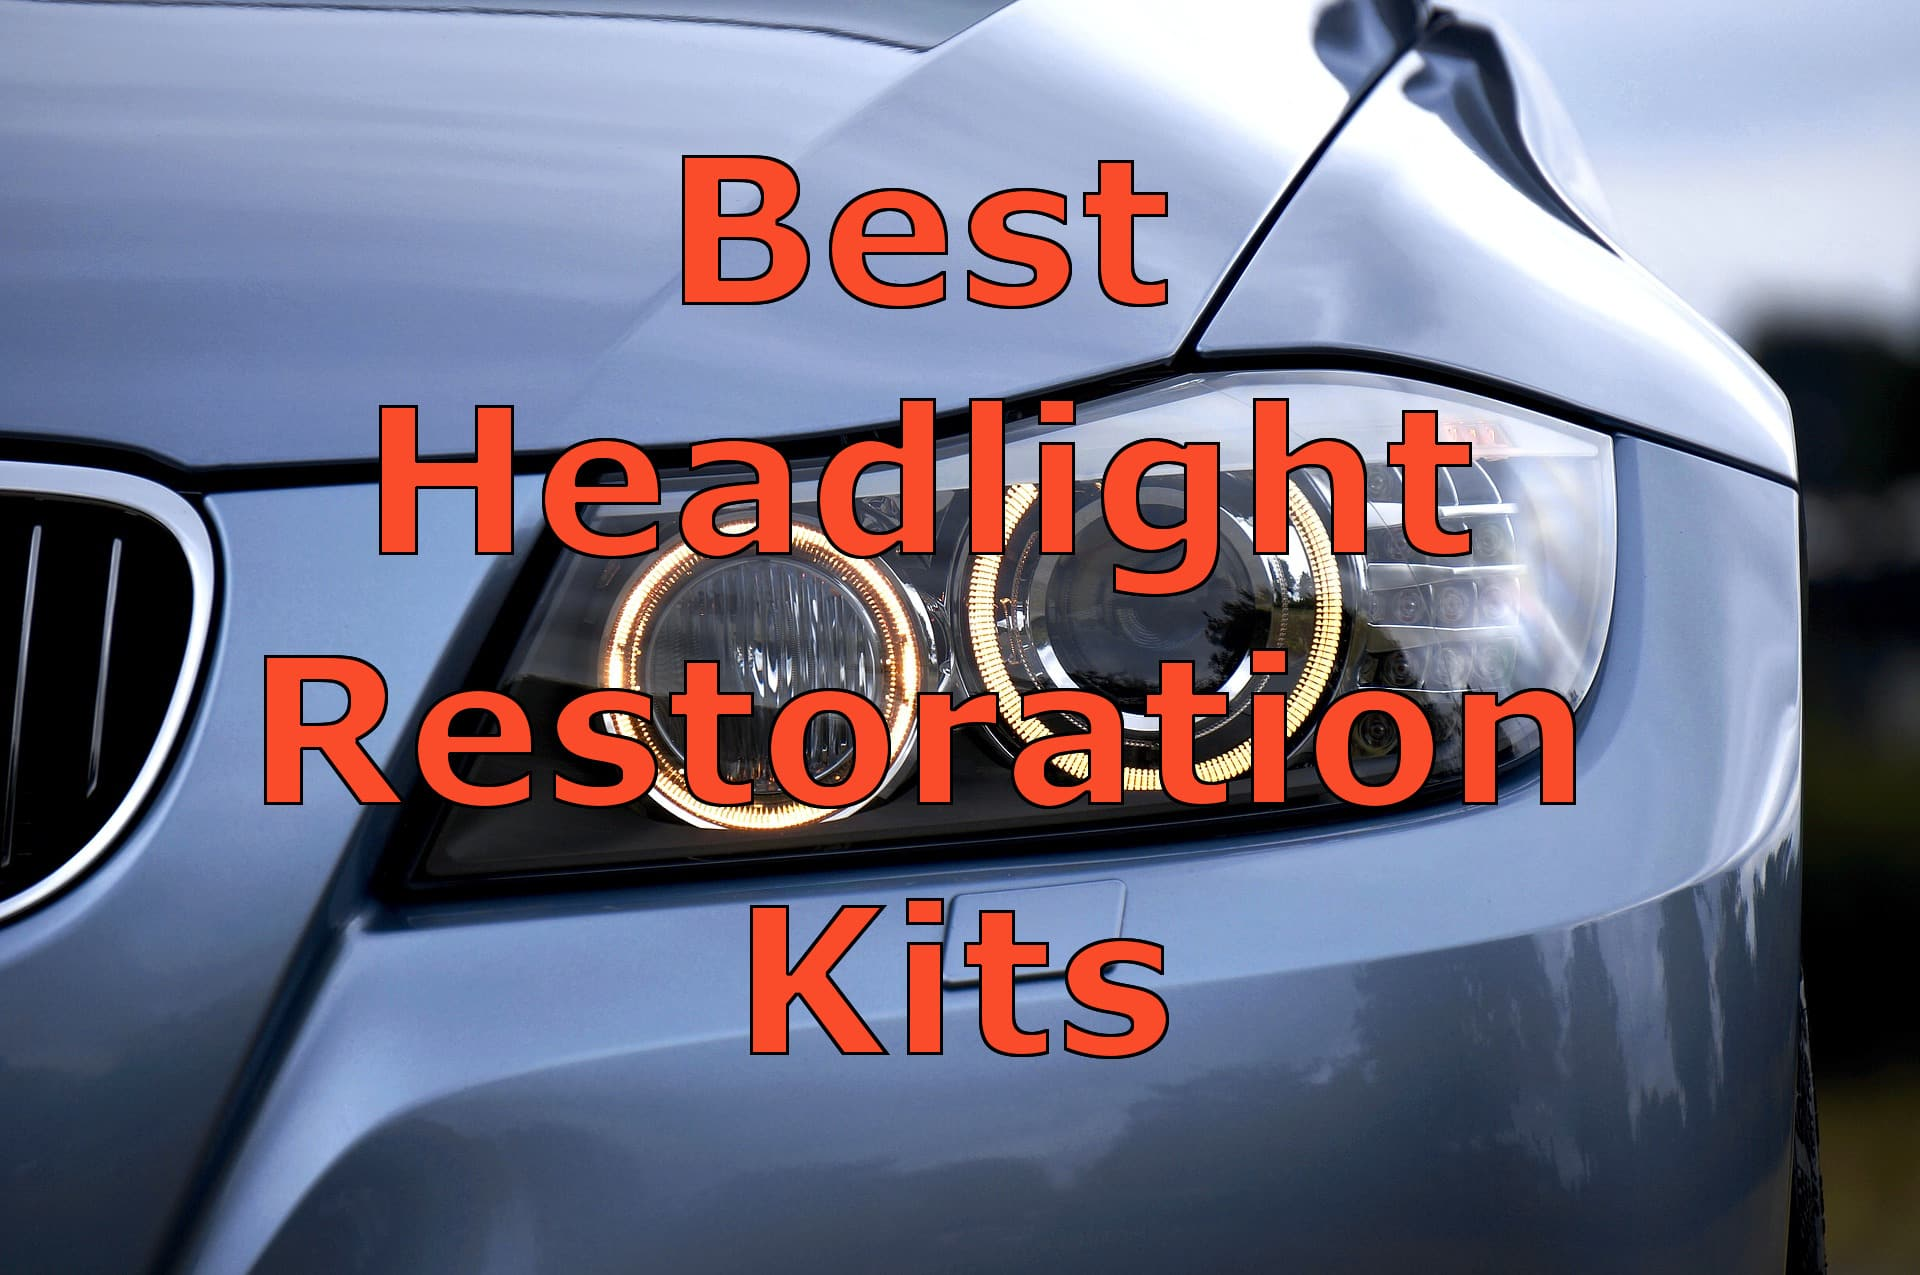 Best Headlight Restoration Kits